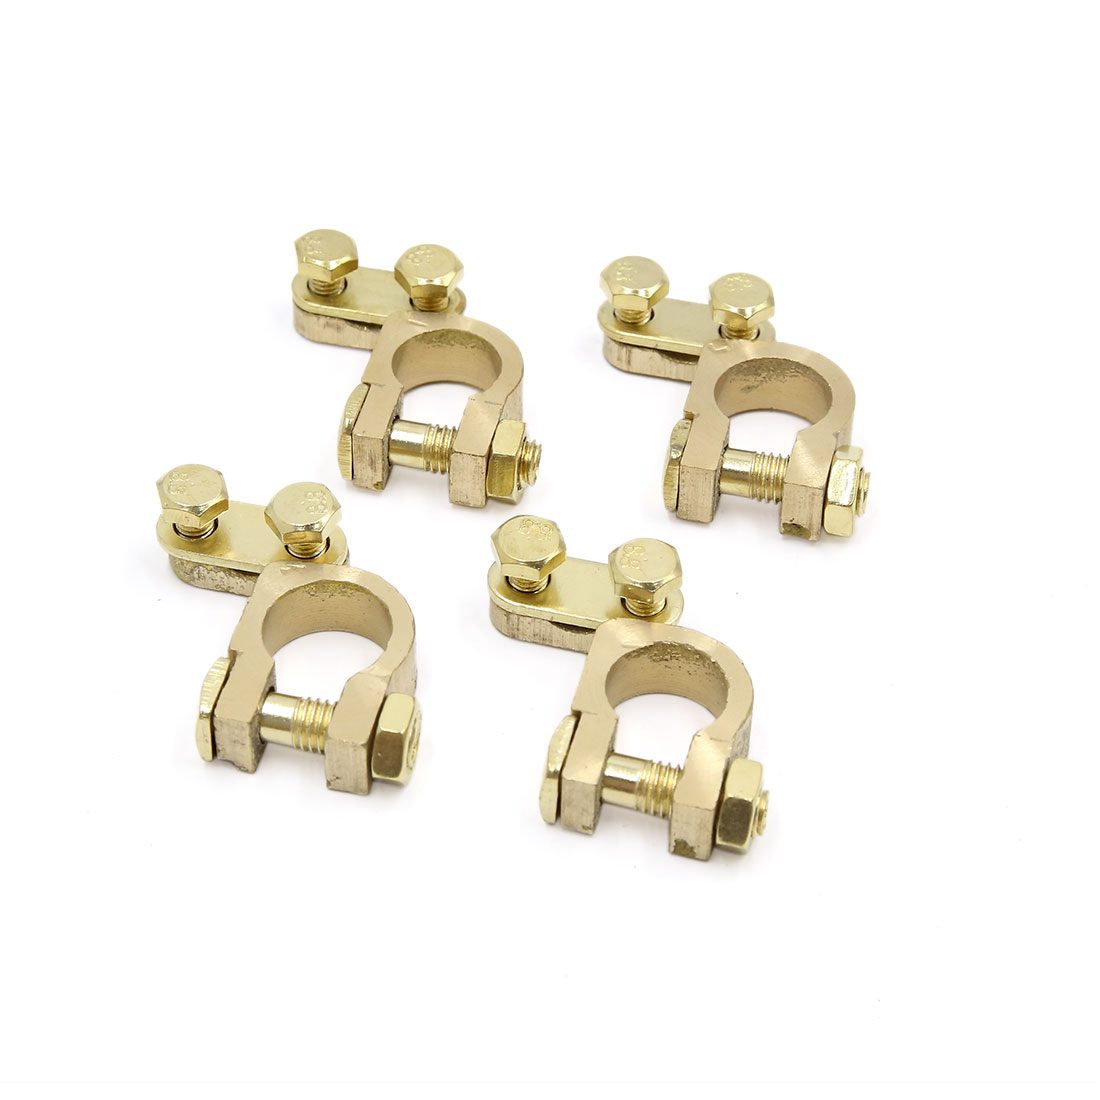 4pcs Gold Tone Copper Alloy Car Truck Vehicle Battery Terminal Clamps Clips